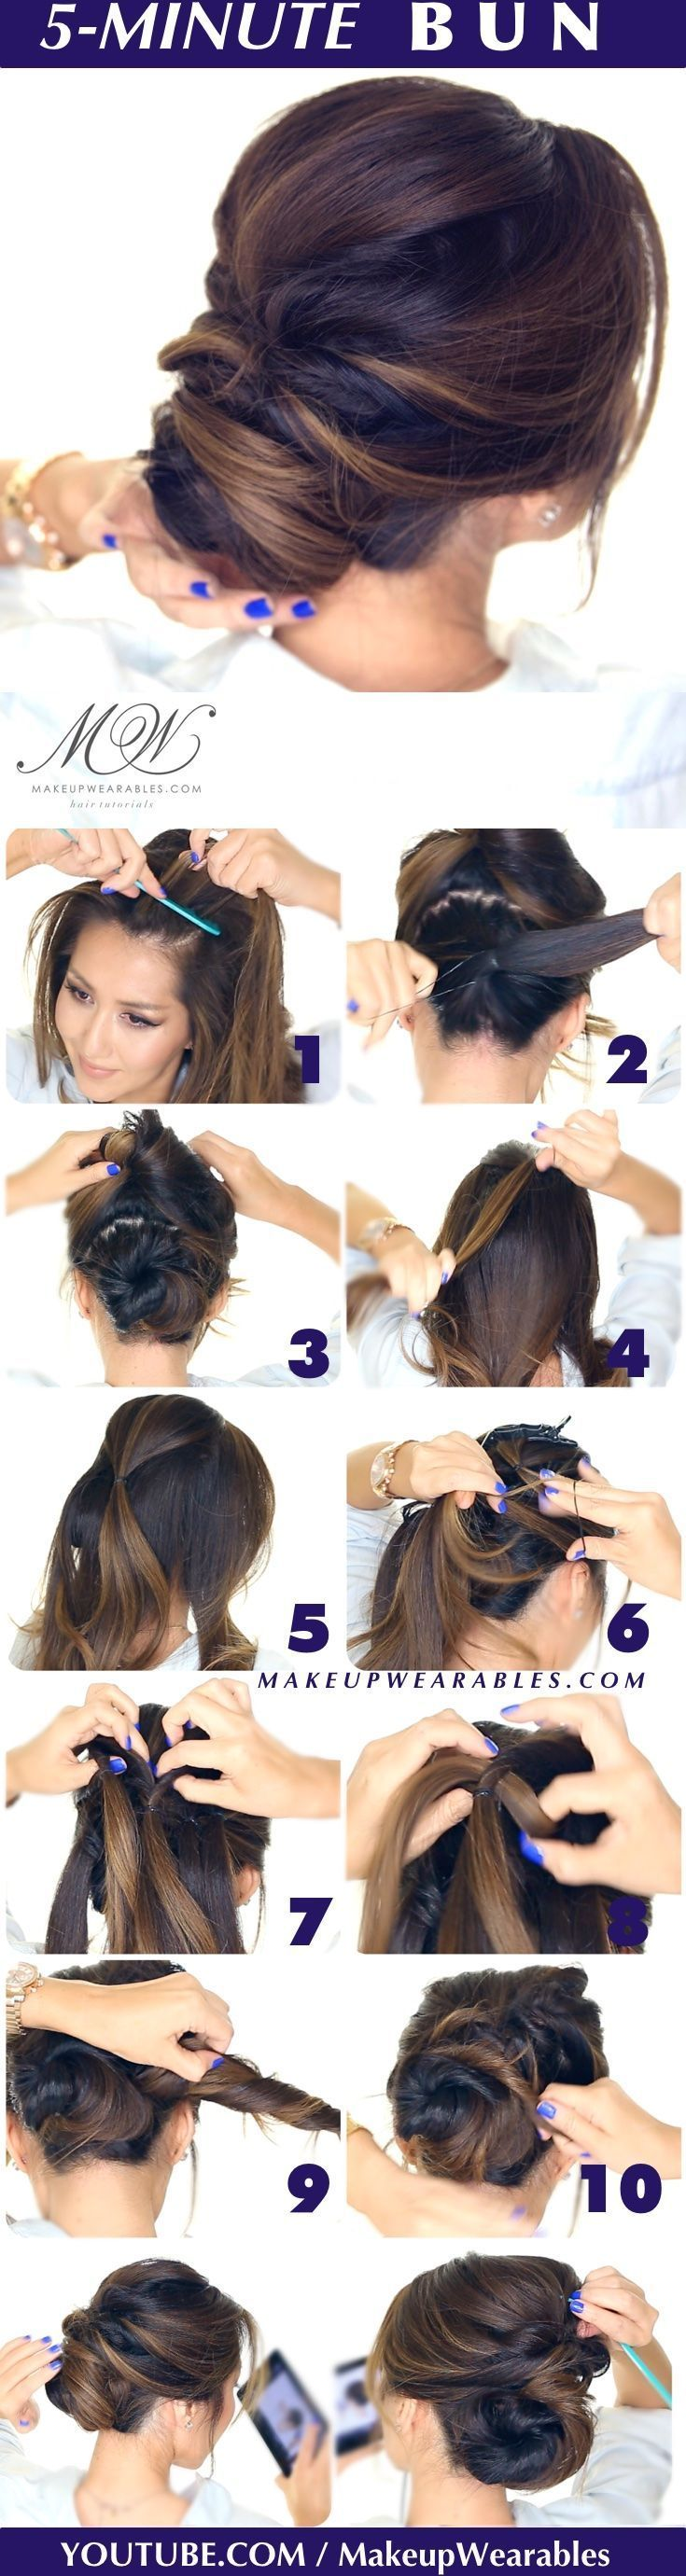 259 best Everyday Hairstyle Ideas images on Pinterest